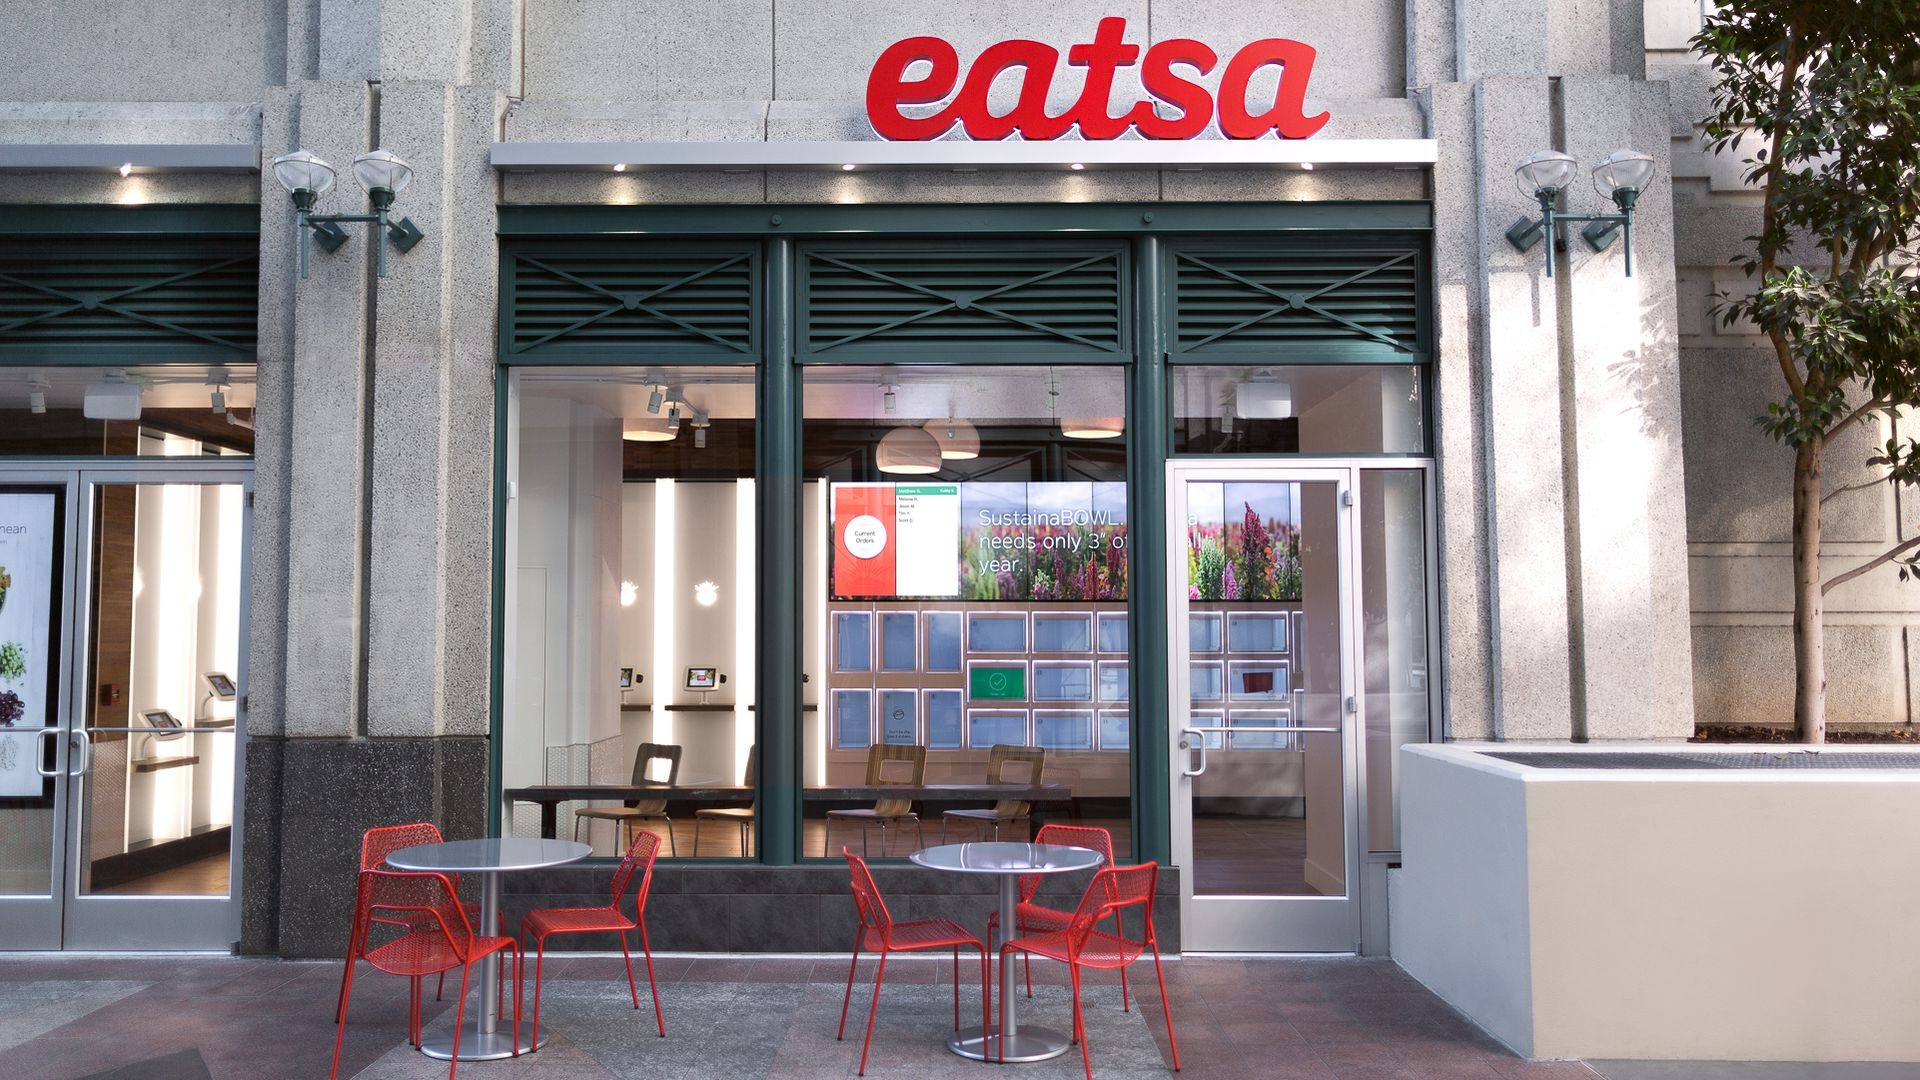 The exterior of an Eatsa restaurant